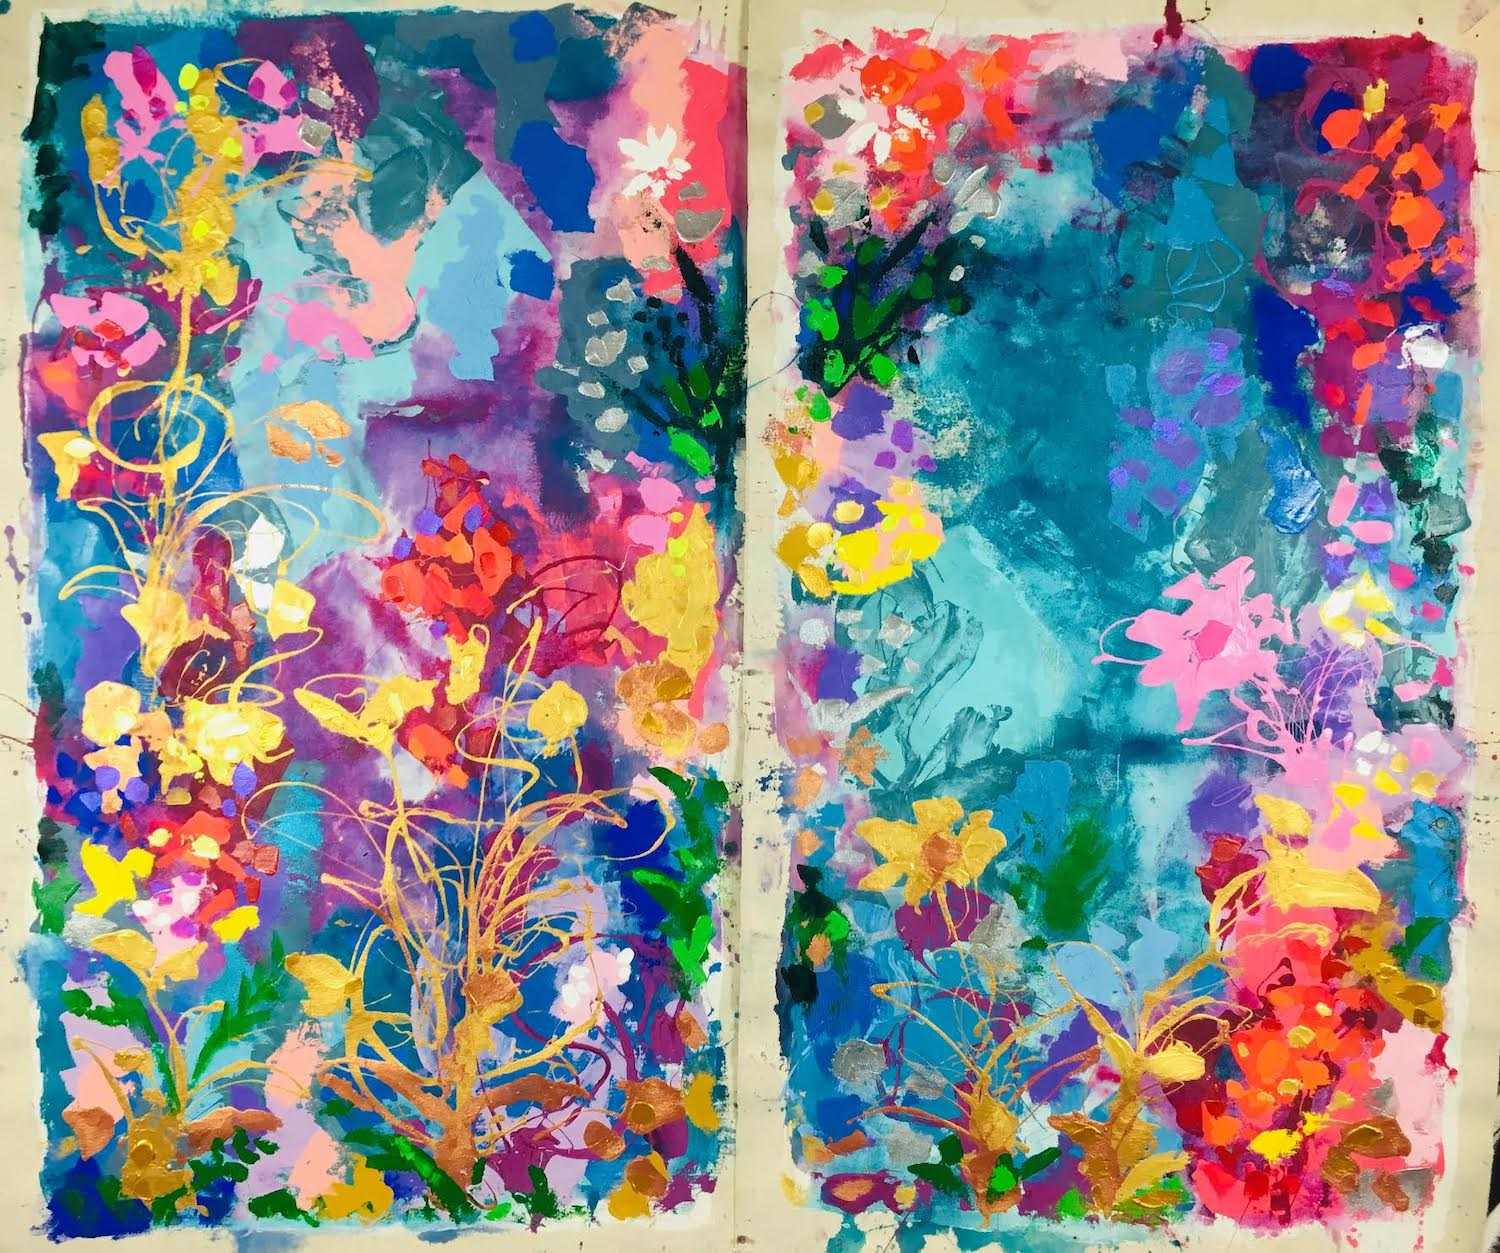 *sold* Pushing Past the Boulders (diptych), 65 x 35 each, acrylic on canvas